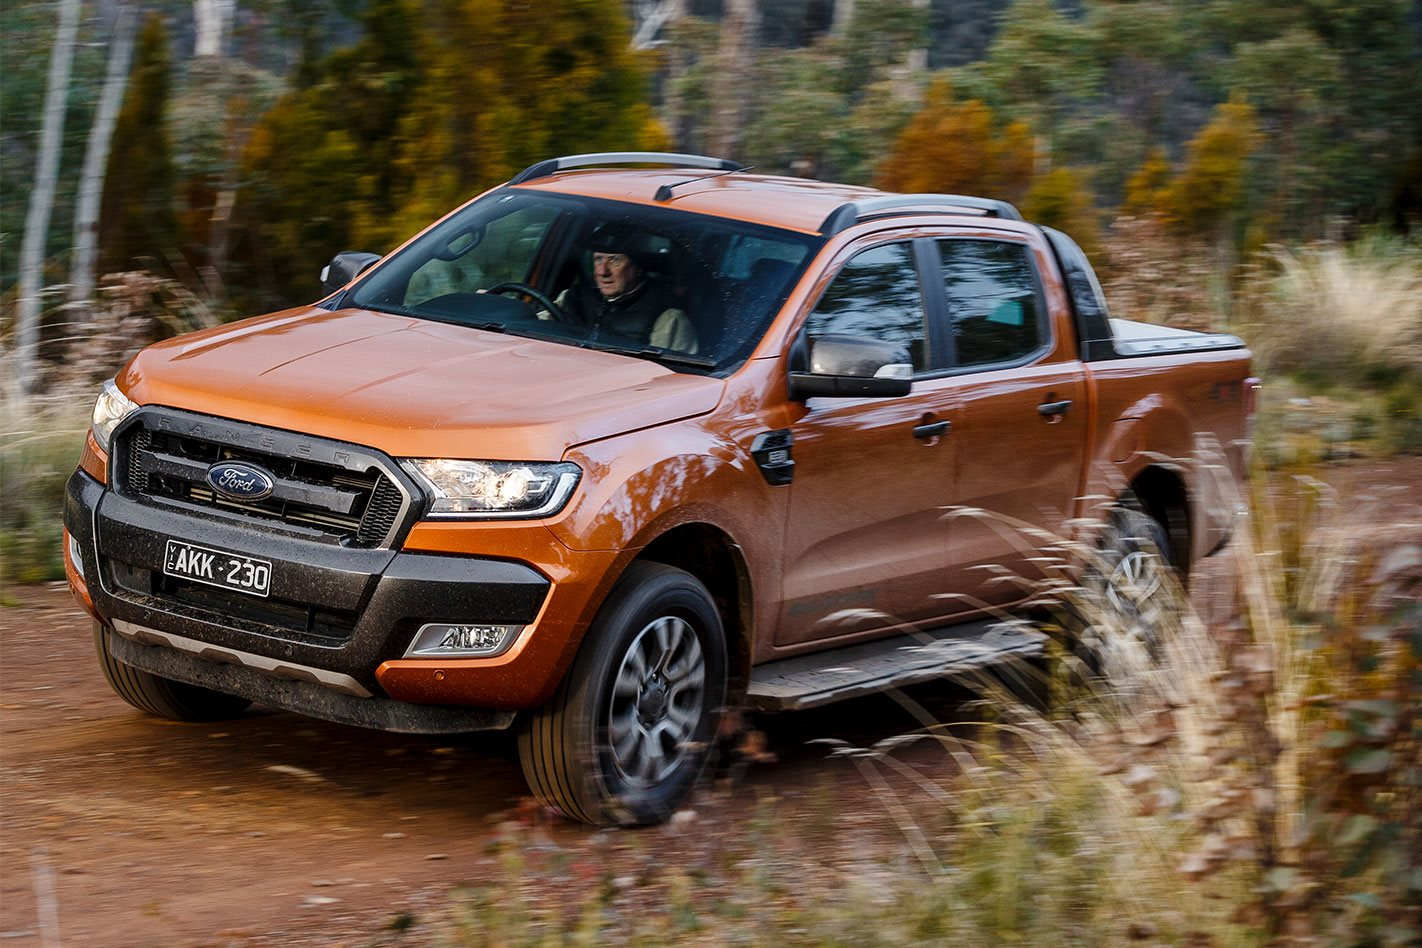 Ford ranger recalled due to fire risk